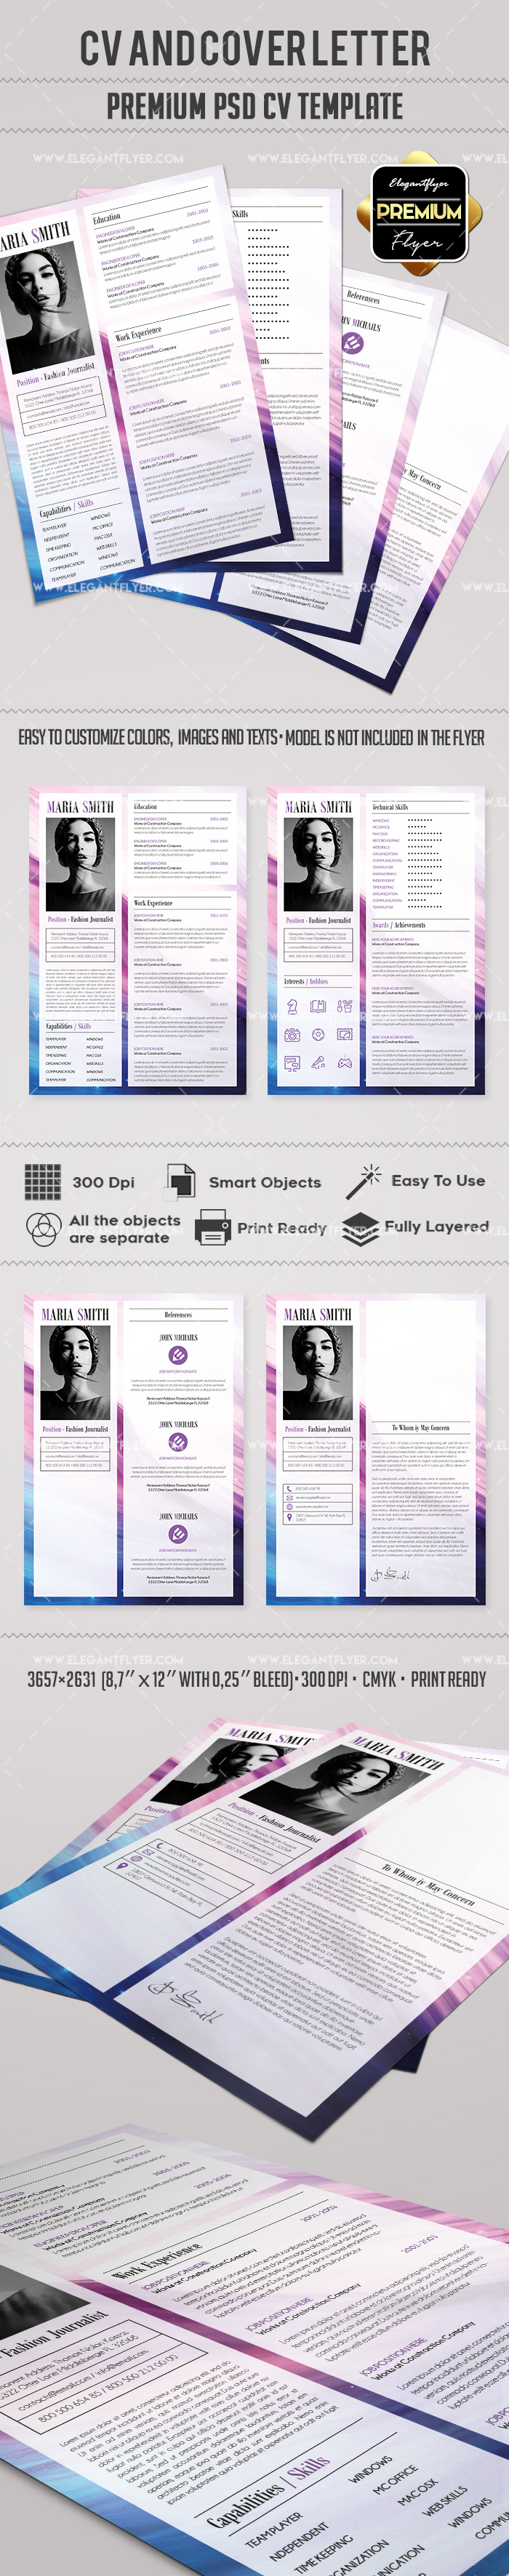 Professional PSD Resume Template + CV and Cover Letter